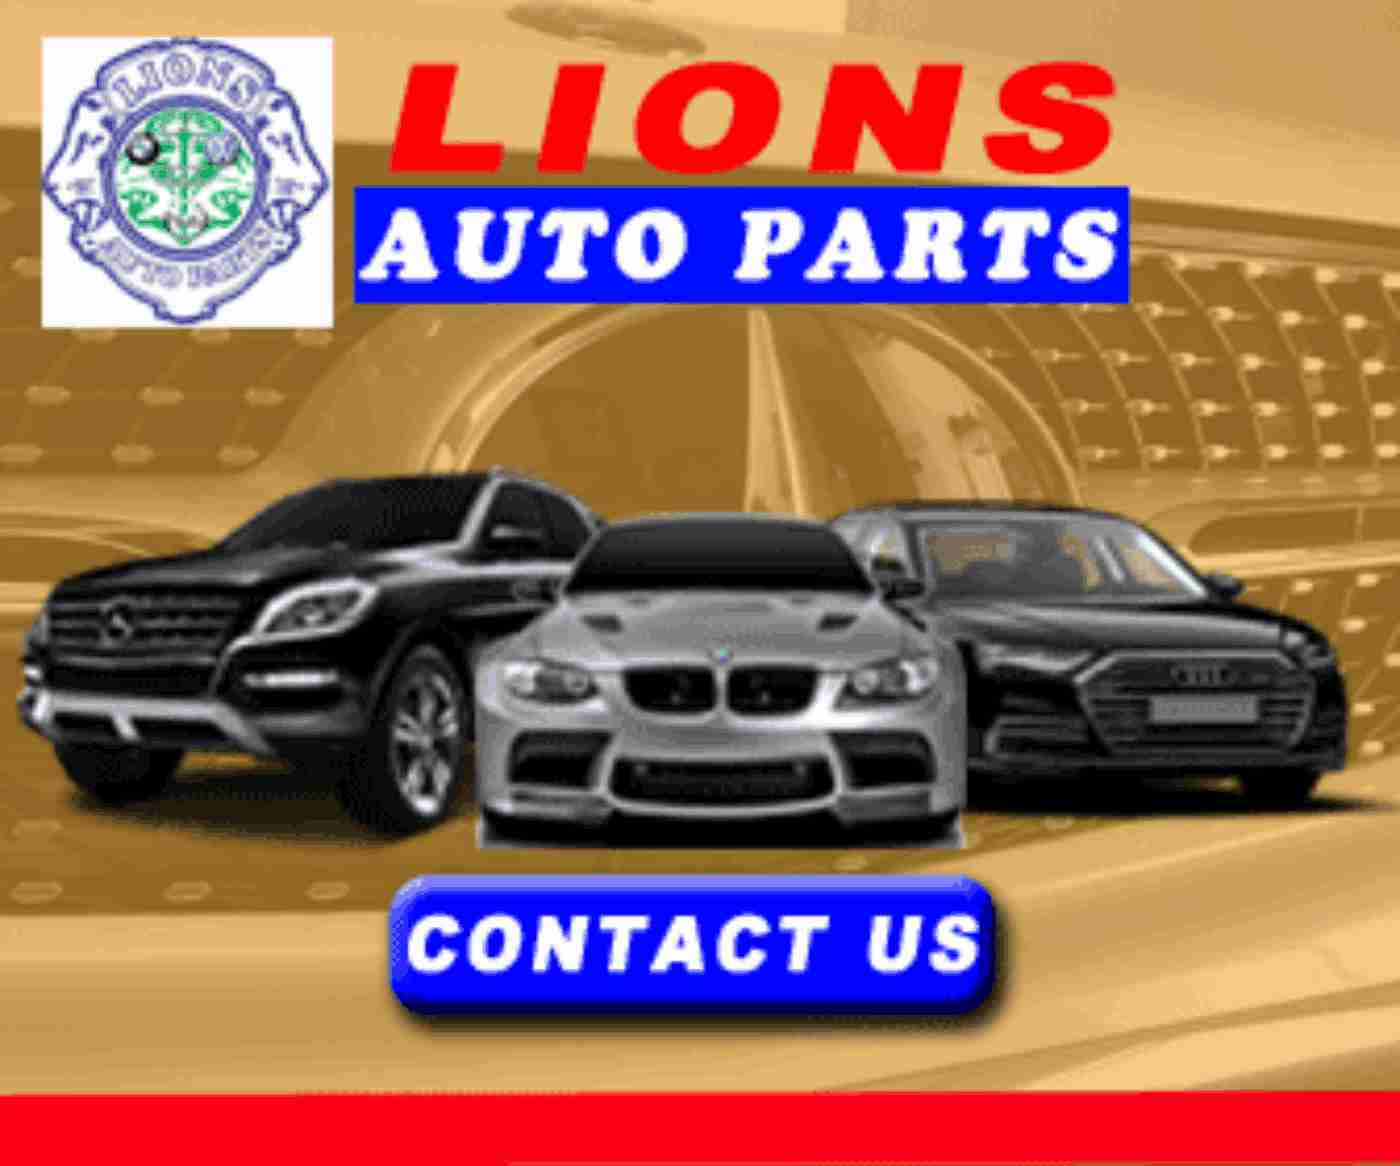 Lions Auto Parts - Merc Benz & BMW Spares